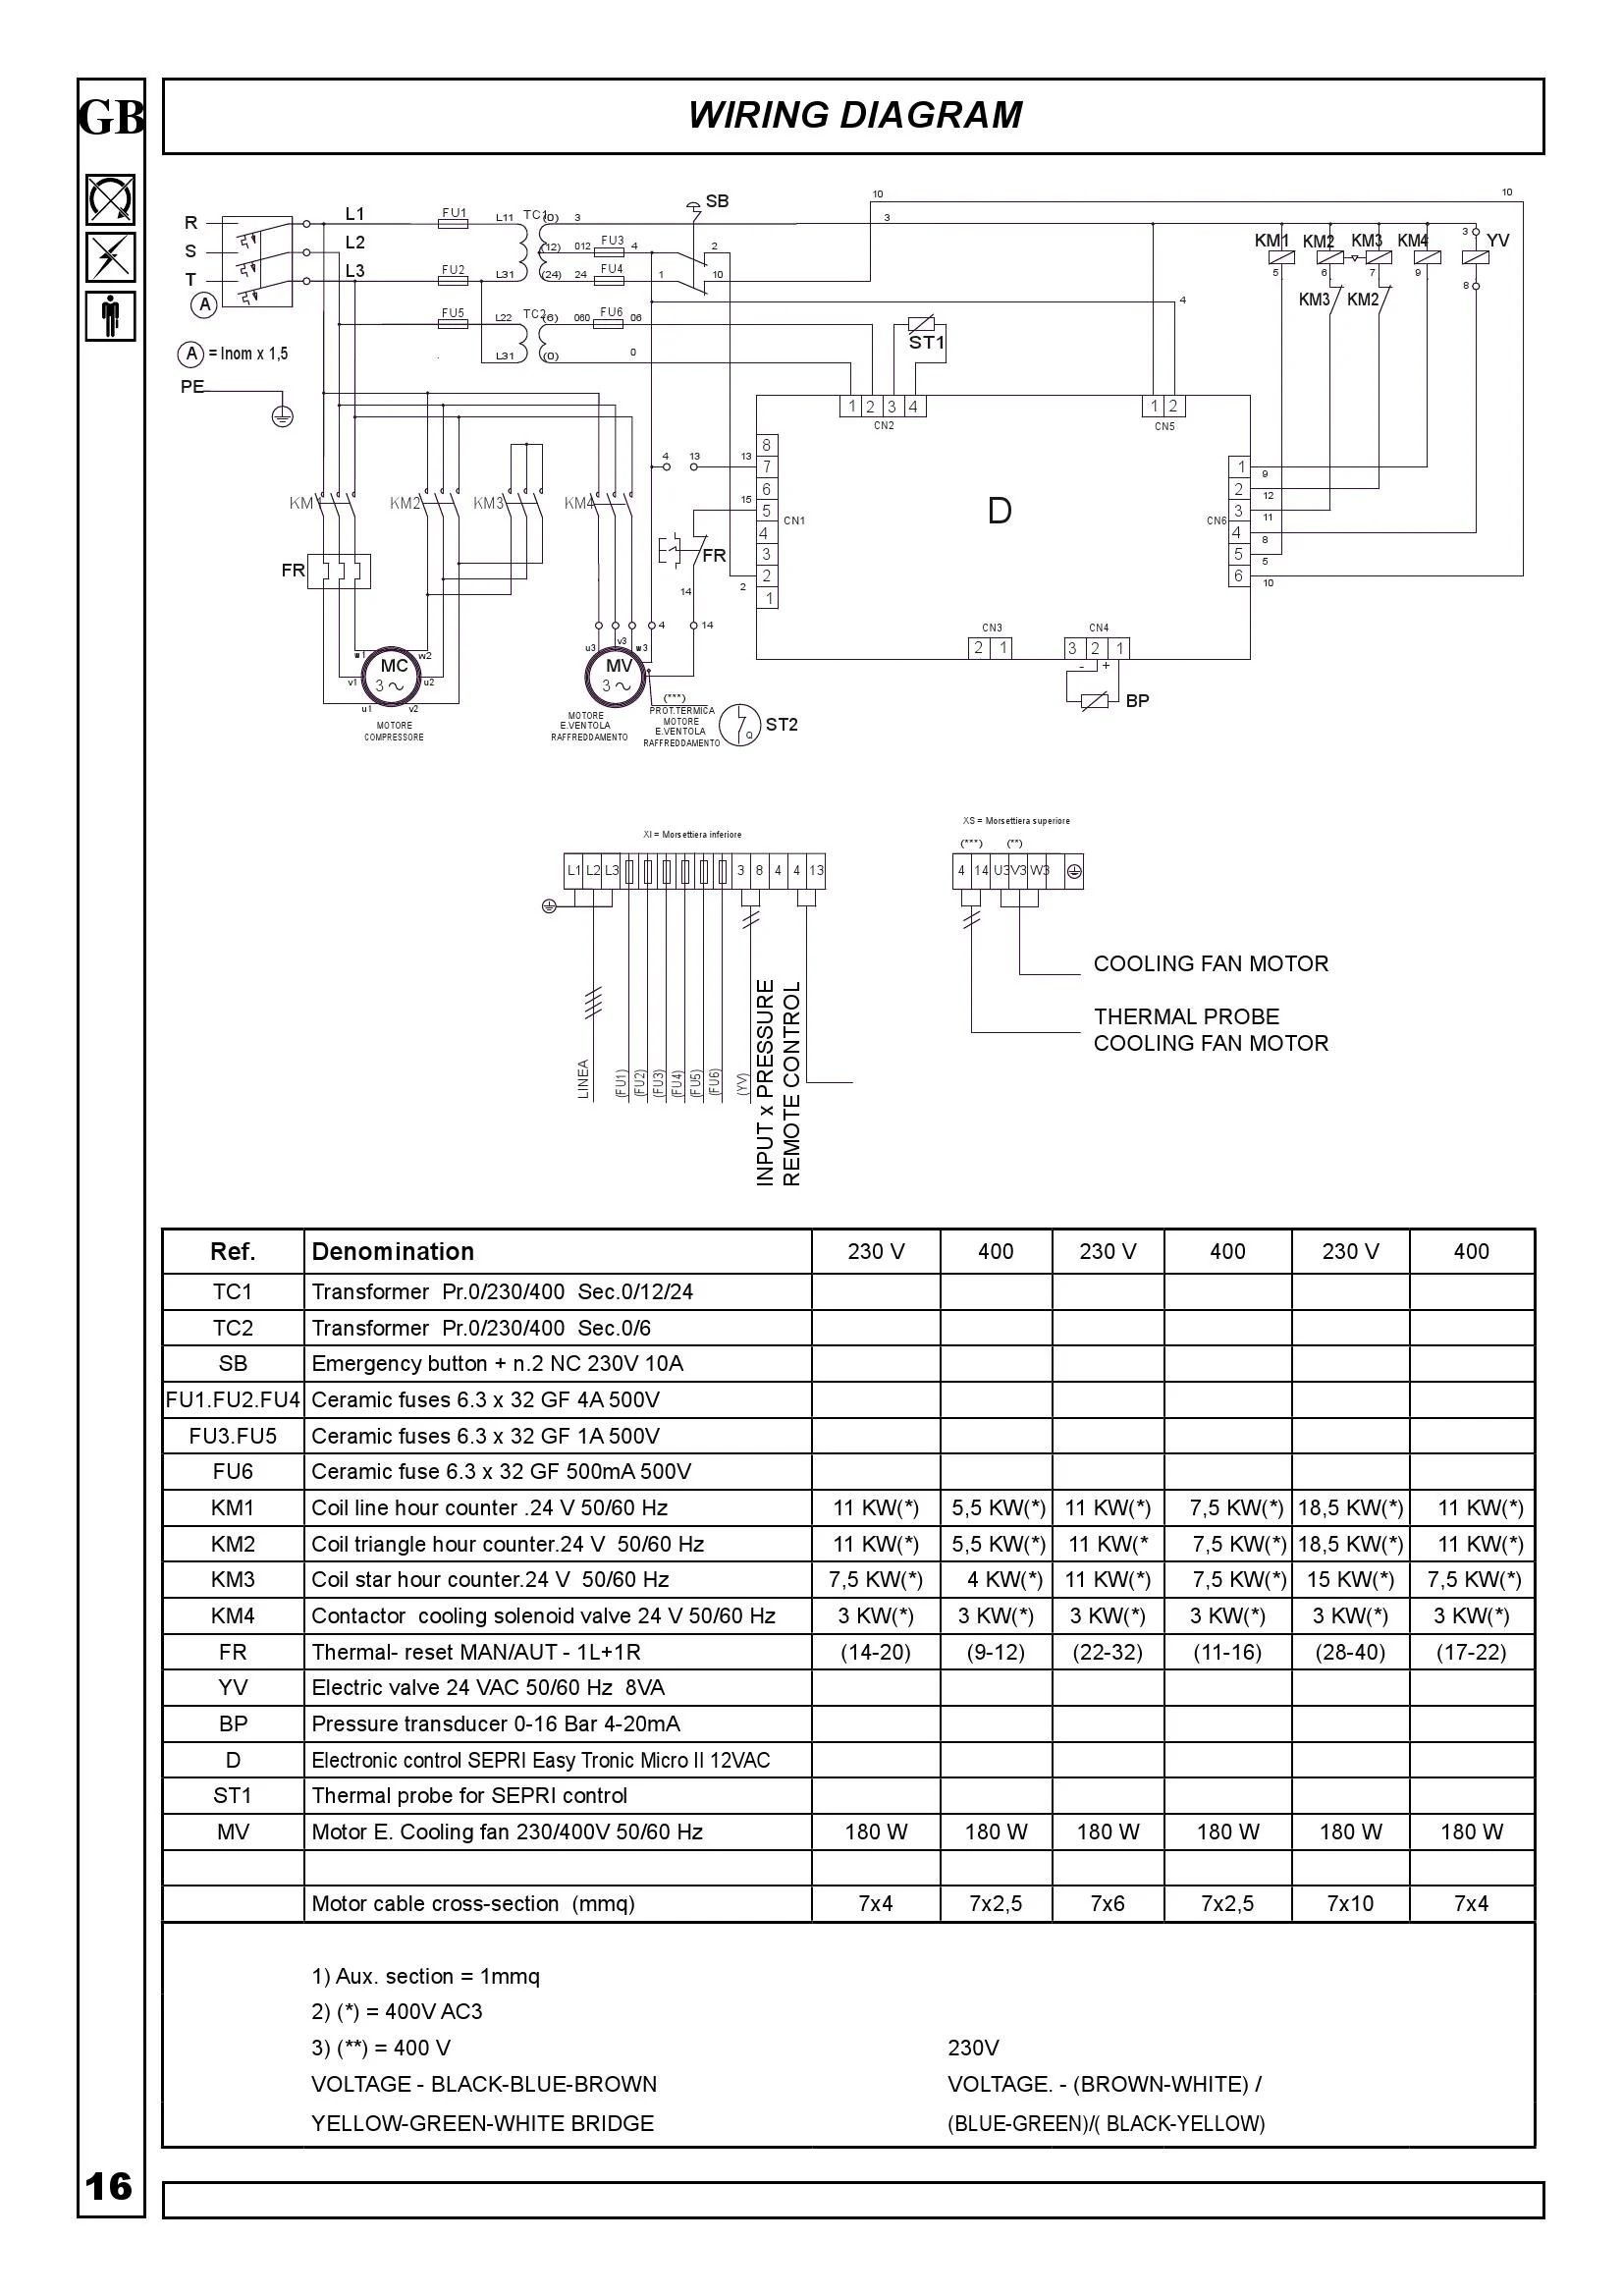 Compressor Slide Valve Wiring Diagram Auto Electrical Arb Twin 34